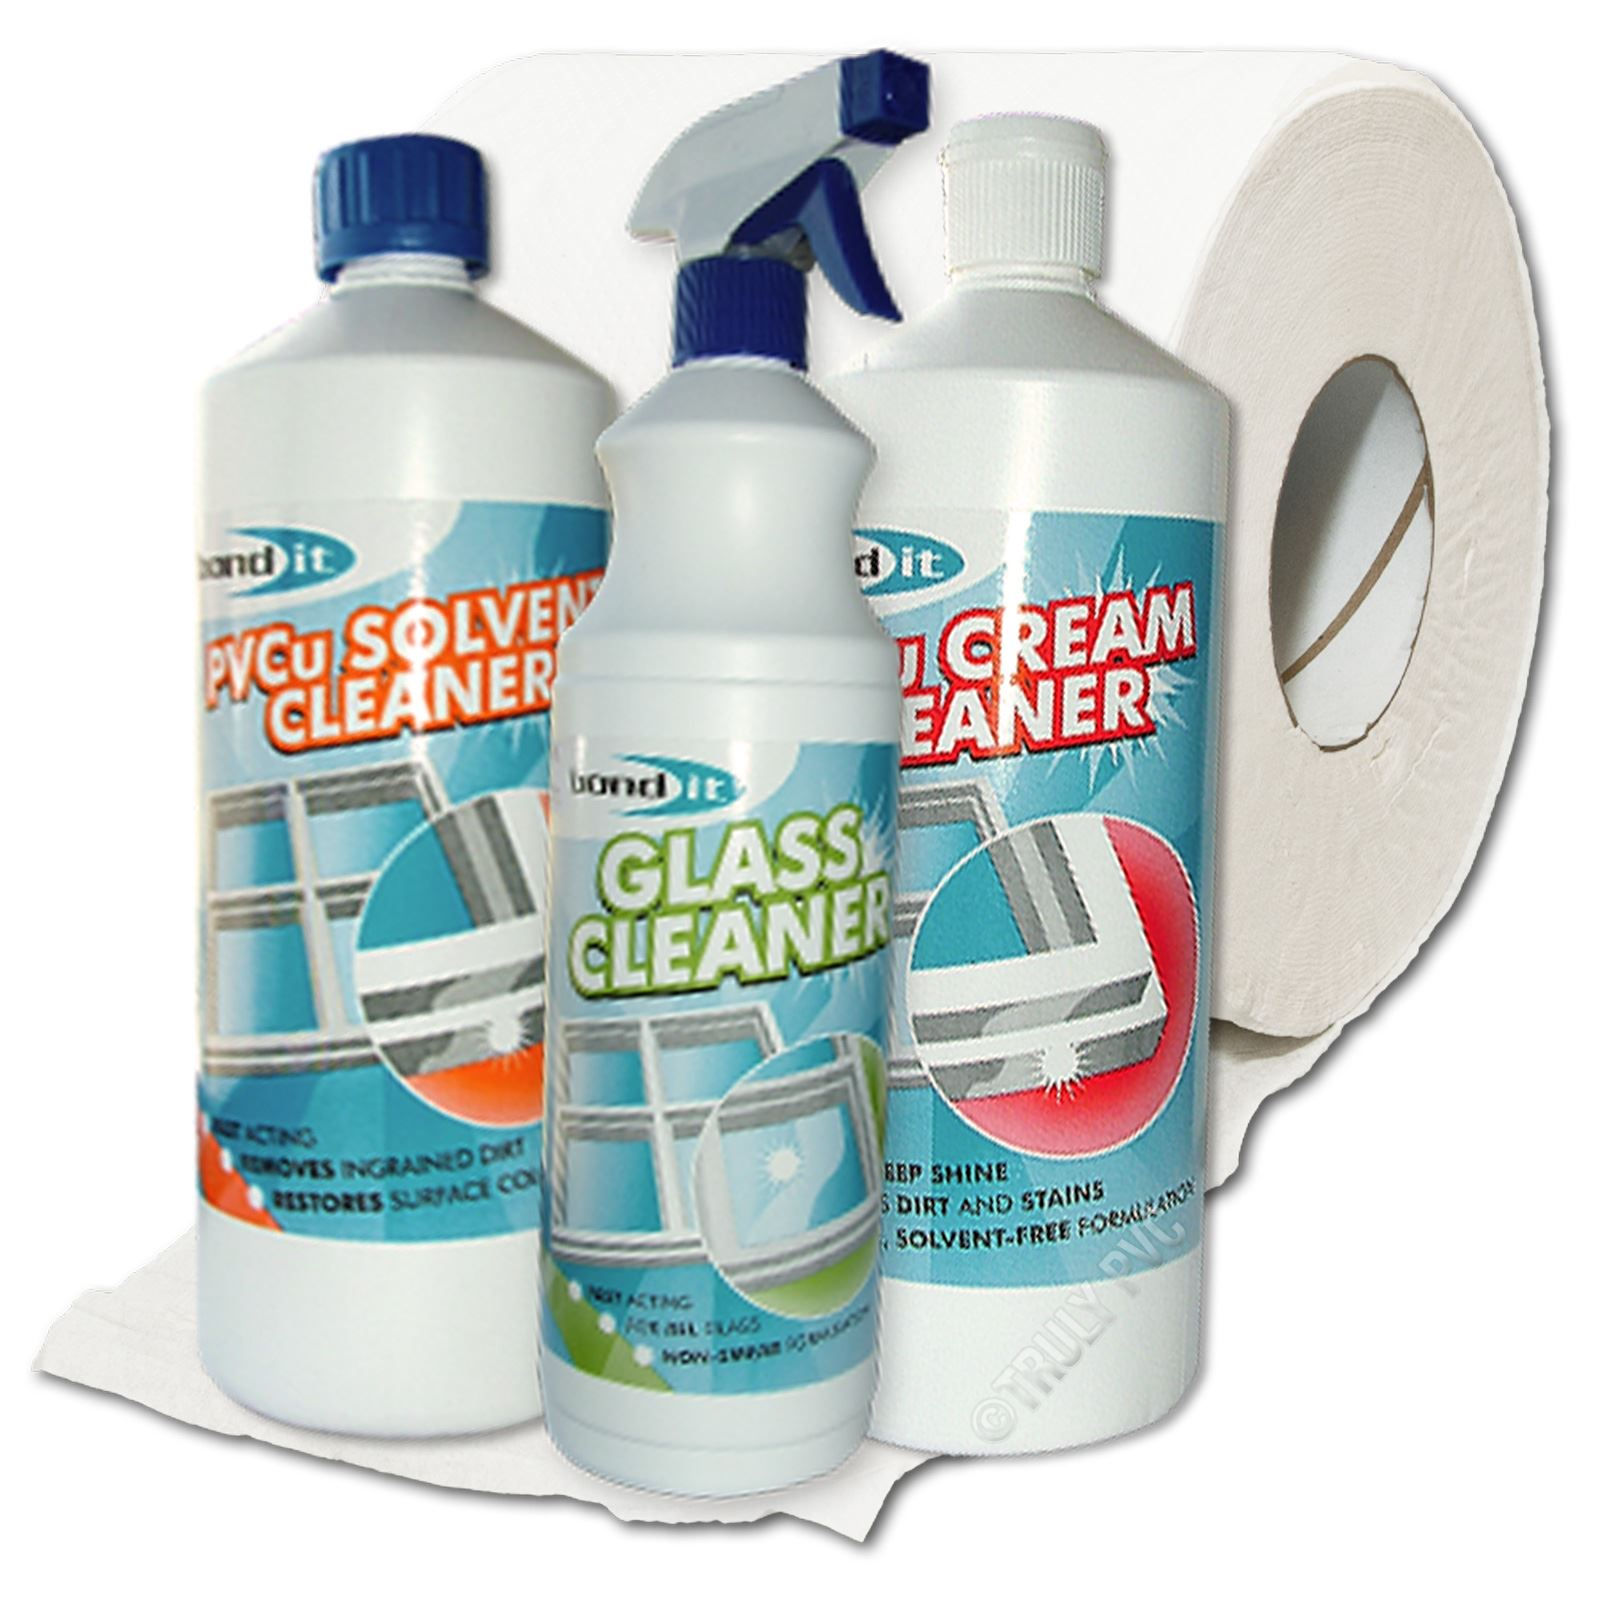 Pvcu Glass Cleaning Bundle Truly Pvc Supplies